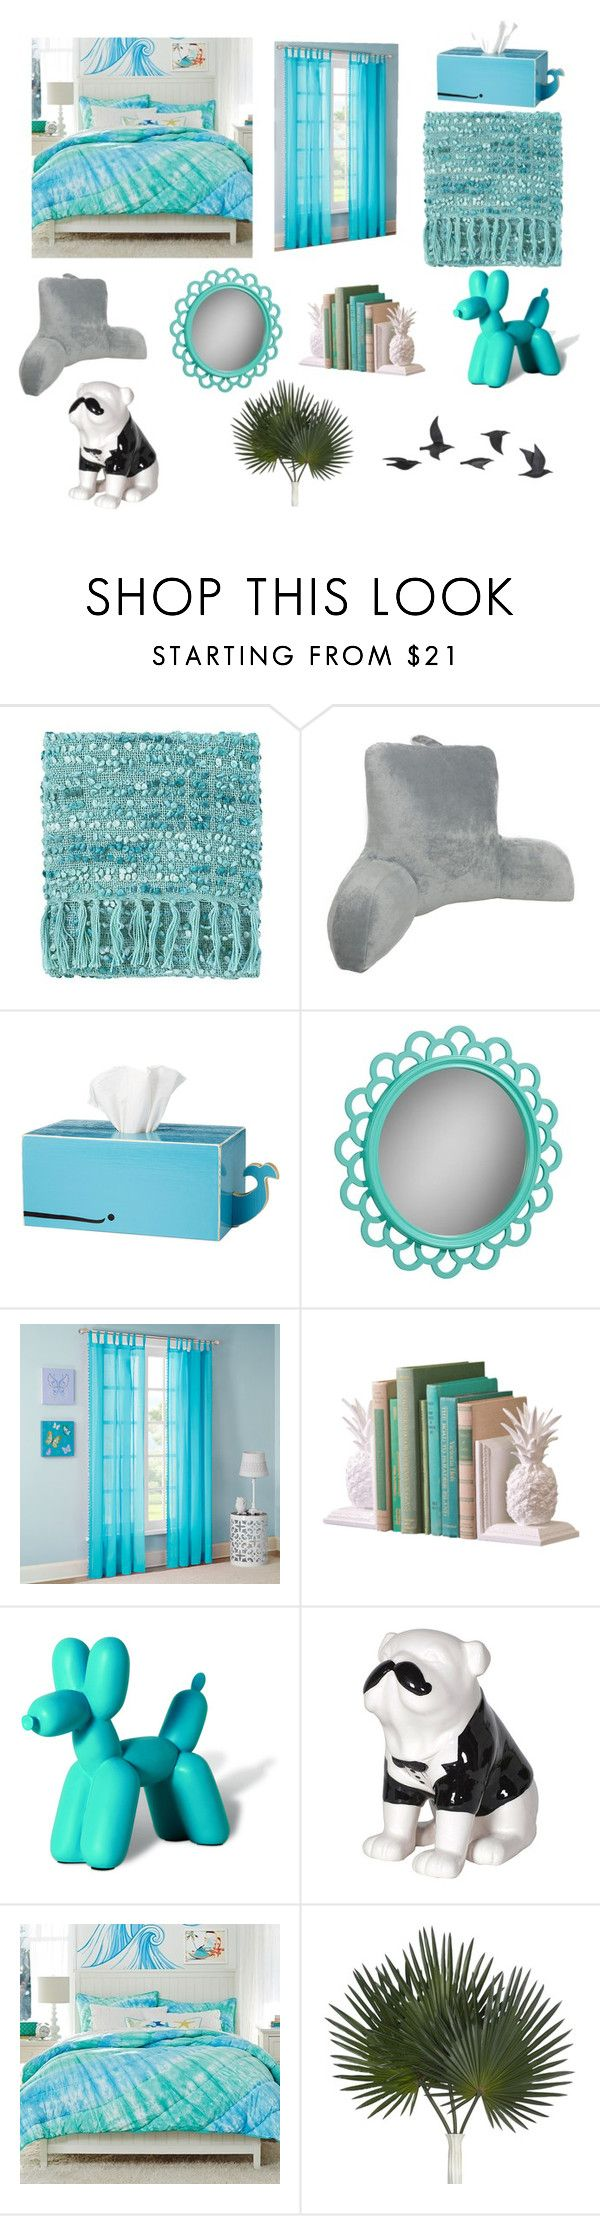 """Bed time"" by mikayla8h ❤ liked on Polyvore featuring interior, interiors, interior design, home, home decor, interior decorating, Elements, PBteen, Mi-Zone and Imm Living"